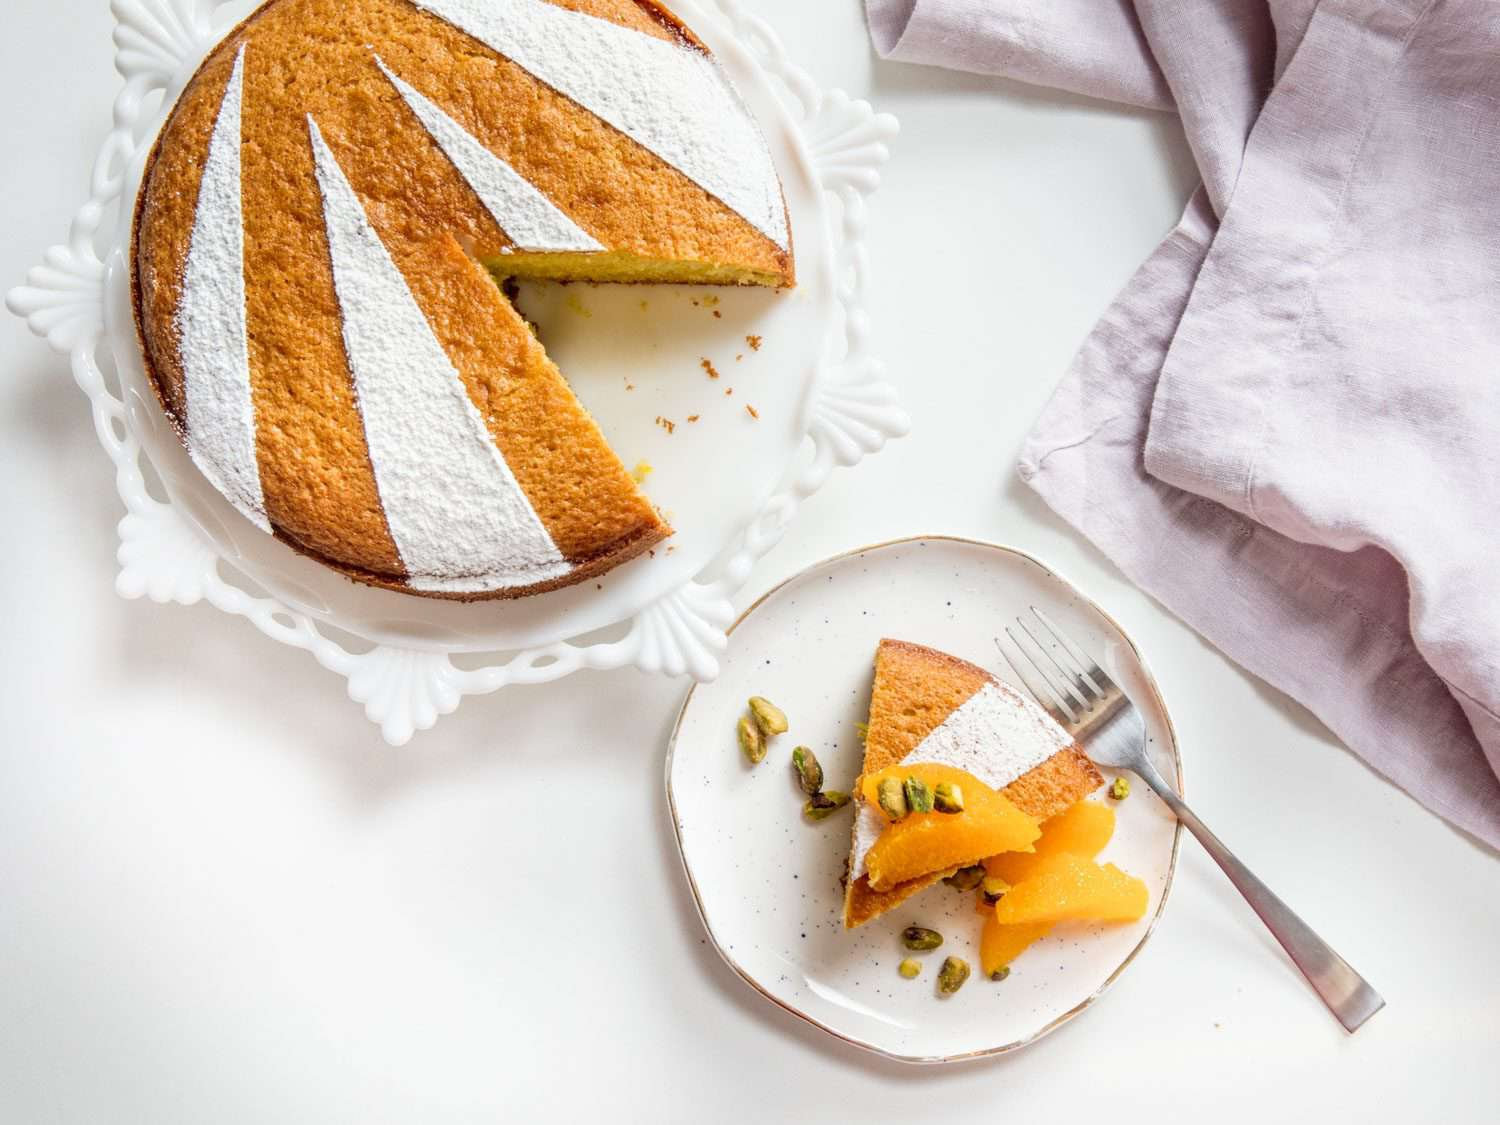 Overhead shot of a slice of olive oil cake on a plate, topped with fruit and nuts, next to the rest of the cake on a cake stand